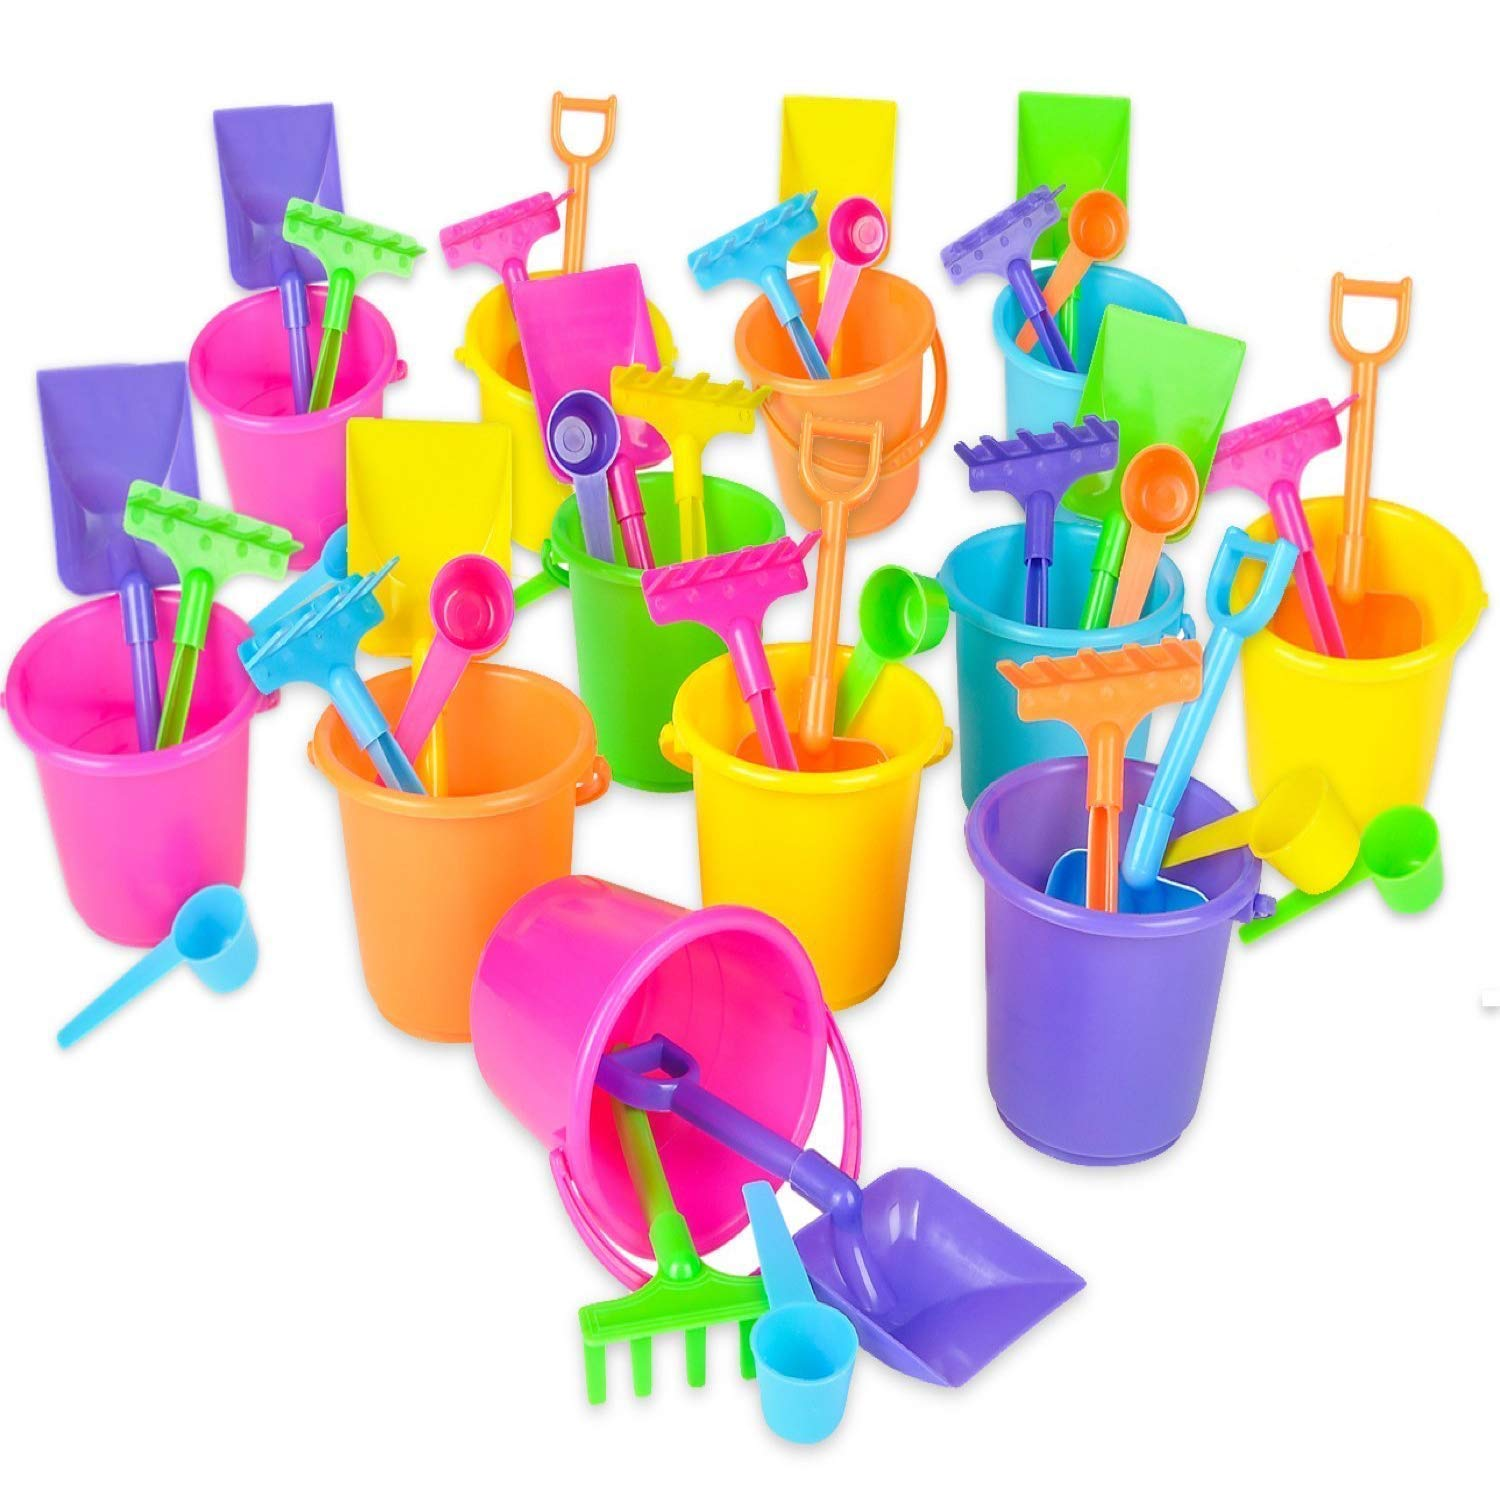 "Beach Bucket and Shovel Set - (Pack of 12) Party Favor Sand Box Play Set and Beach Sand Pail Includes 3-1/4"" Mini Bucket, Shovel, Rake, Scoop Beach Sand Toy for Birthday Or Mermaid Theme"